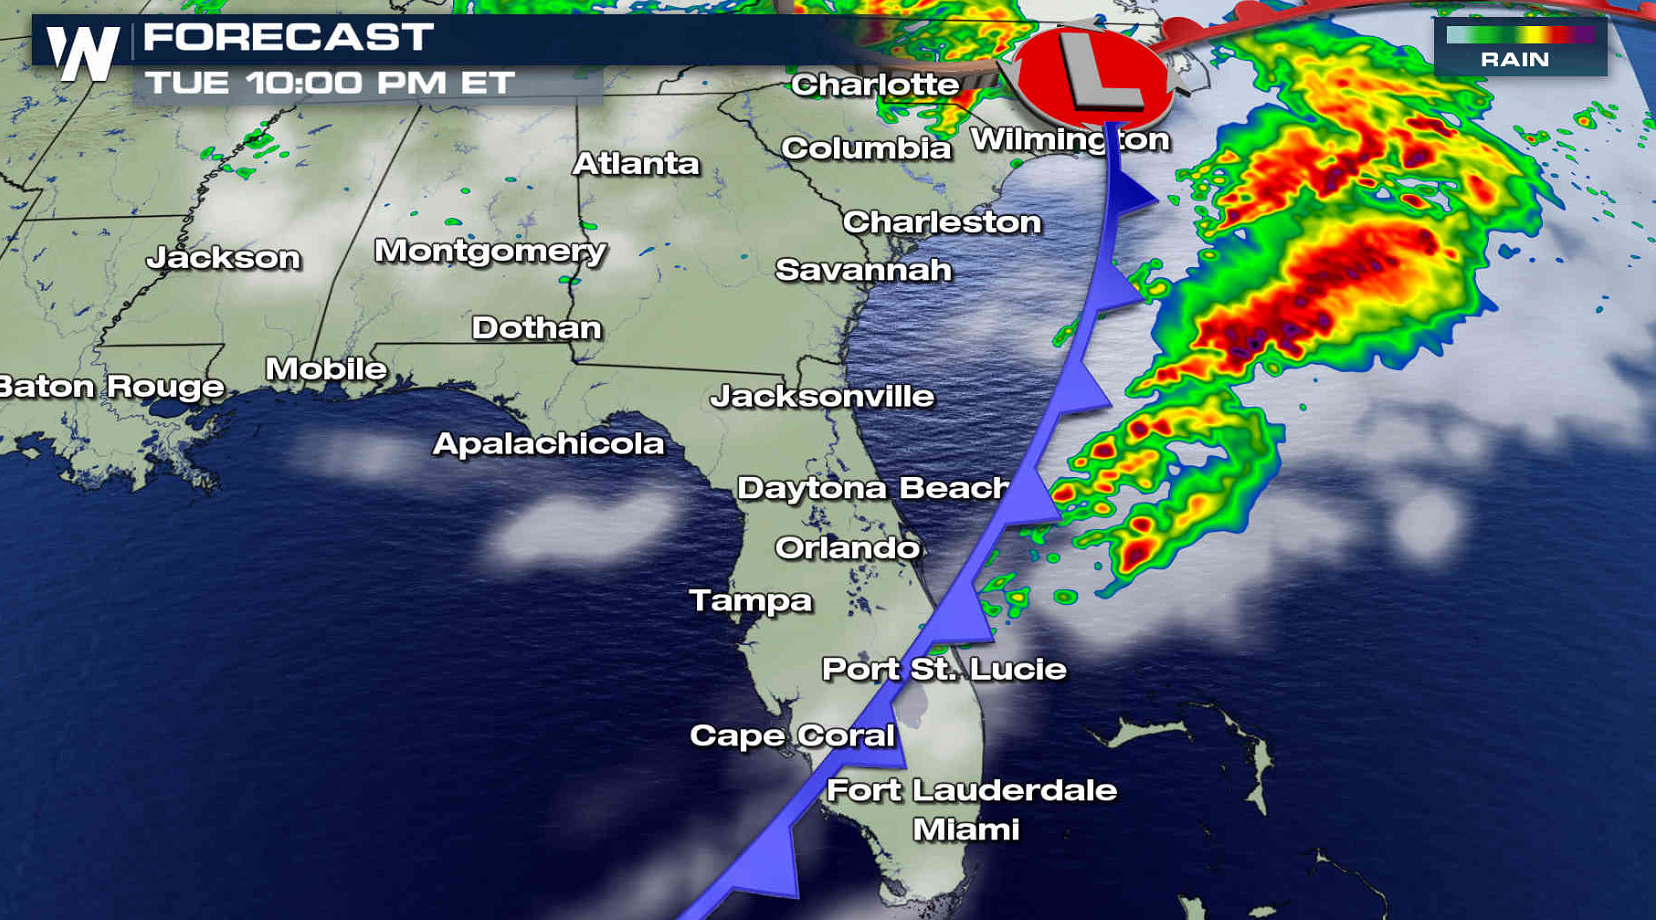 Severe Weather Threat From Florida to South Carolina Today